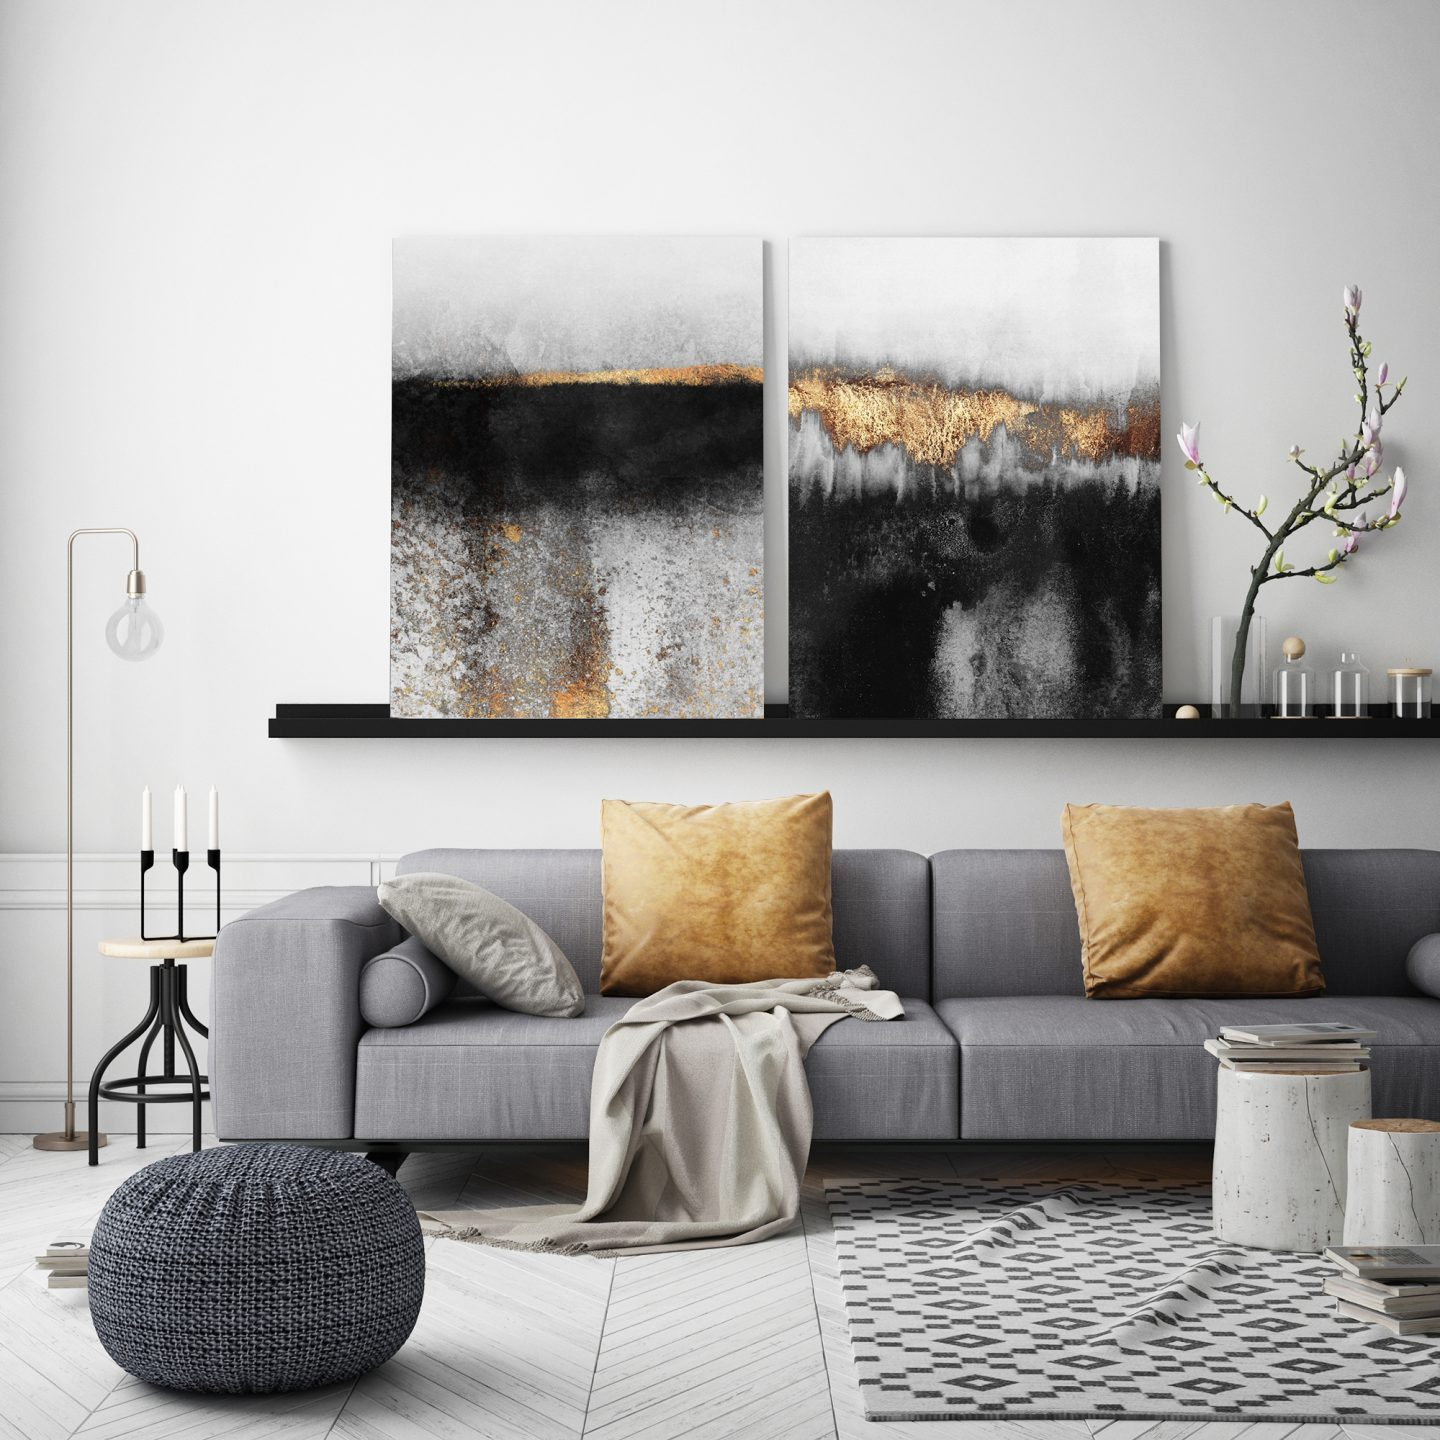 Metal prints on a shelf in a white living room with grey accessories